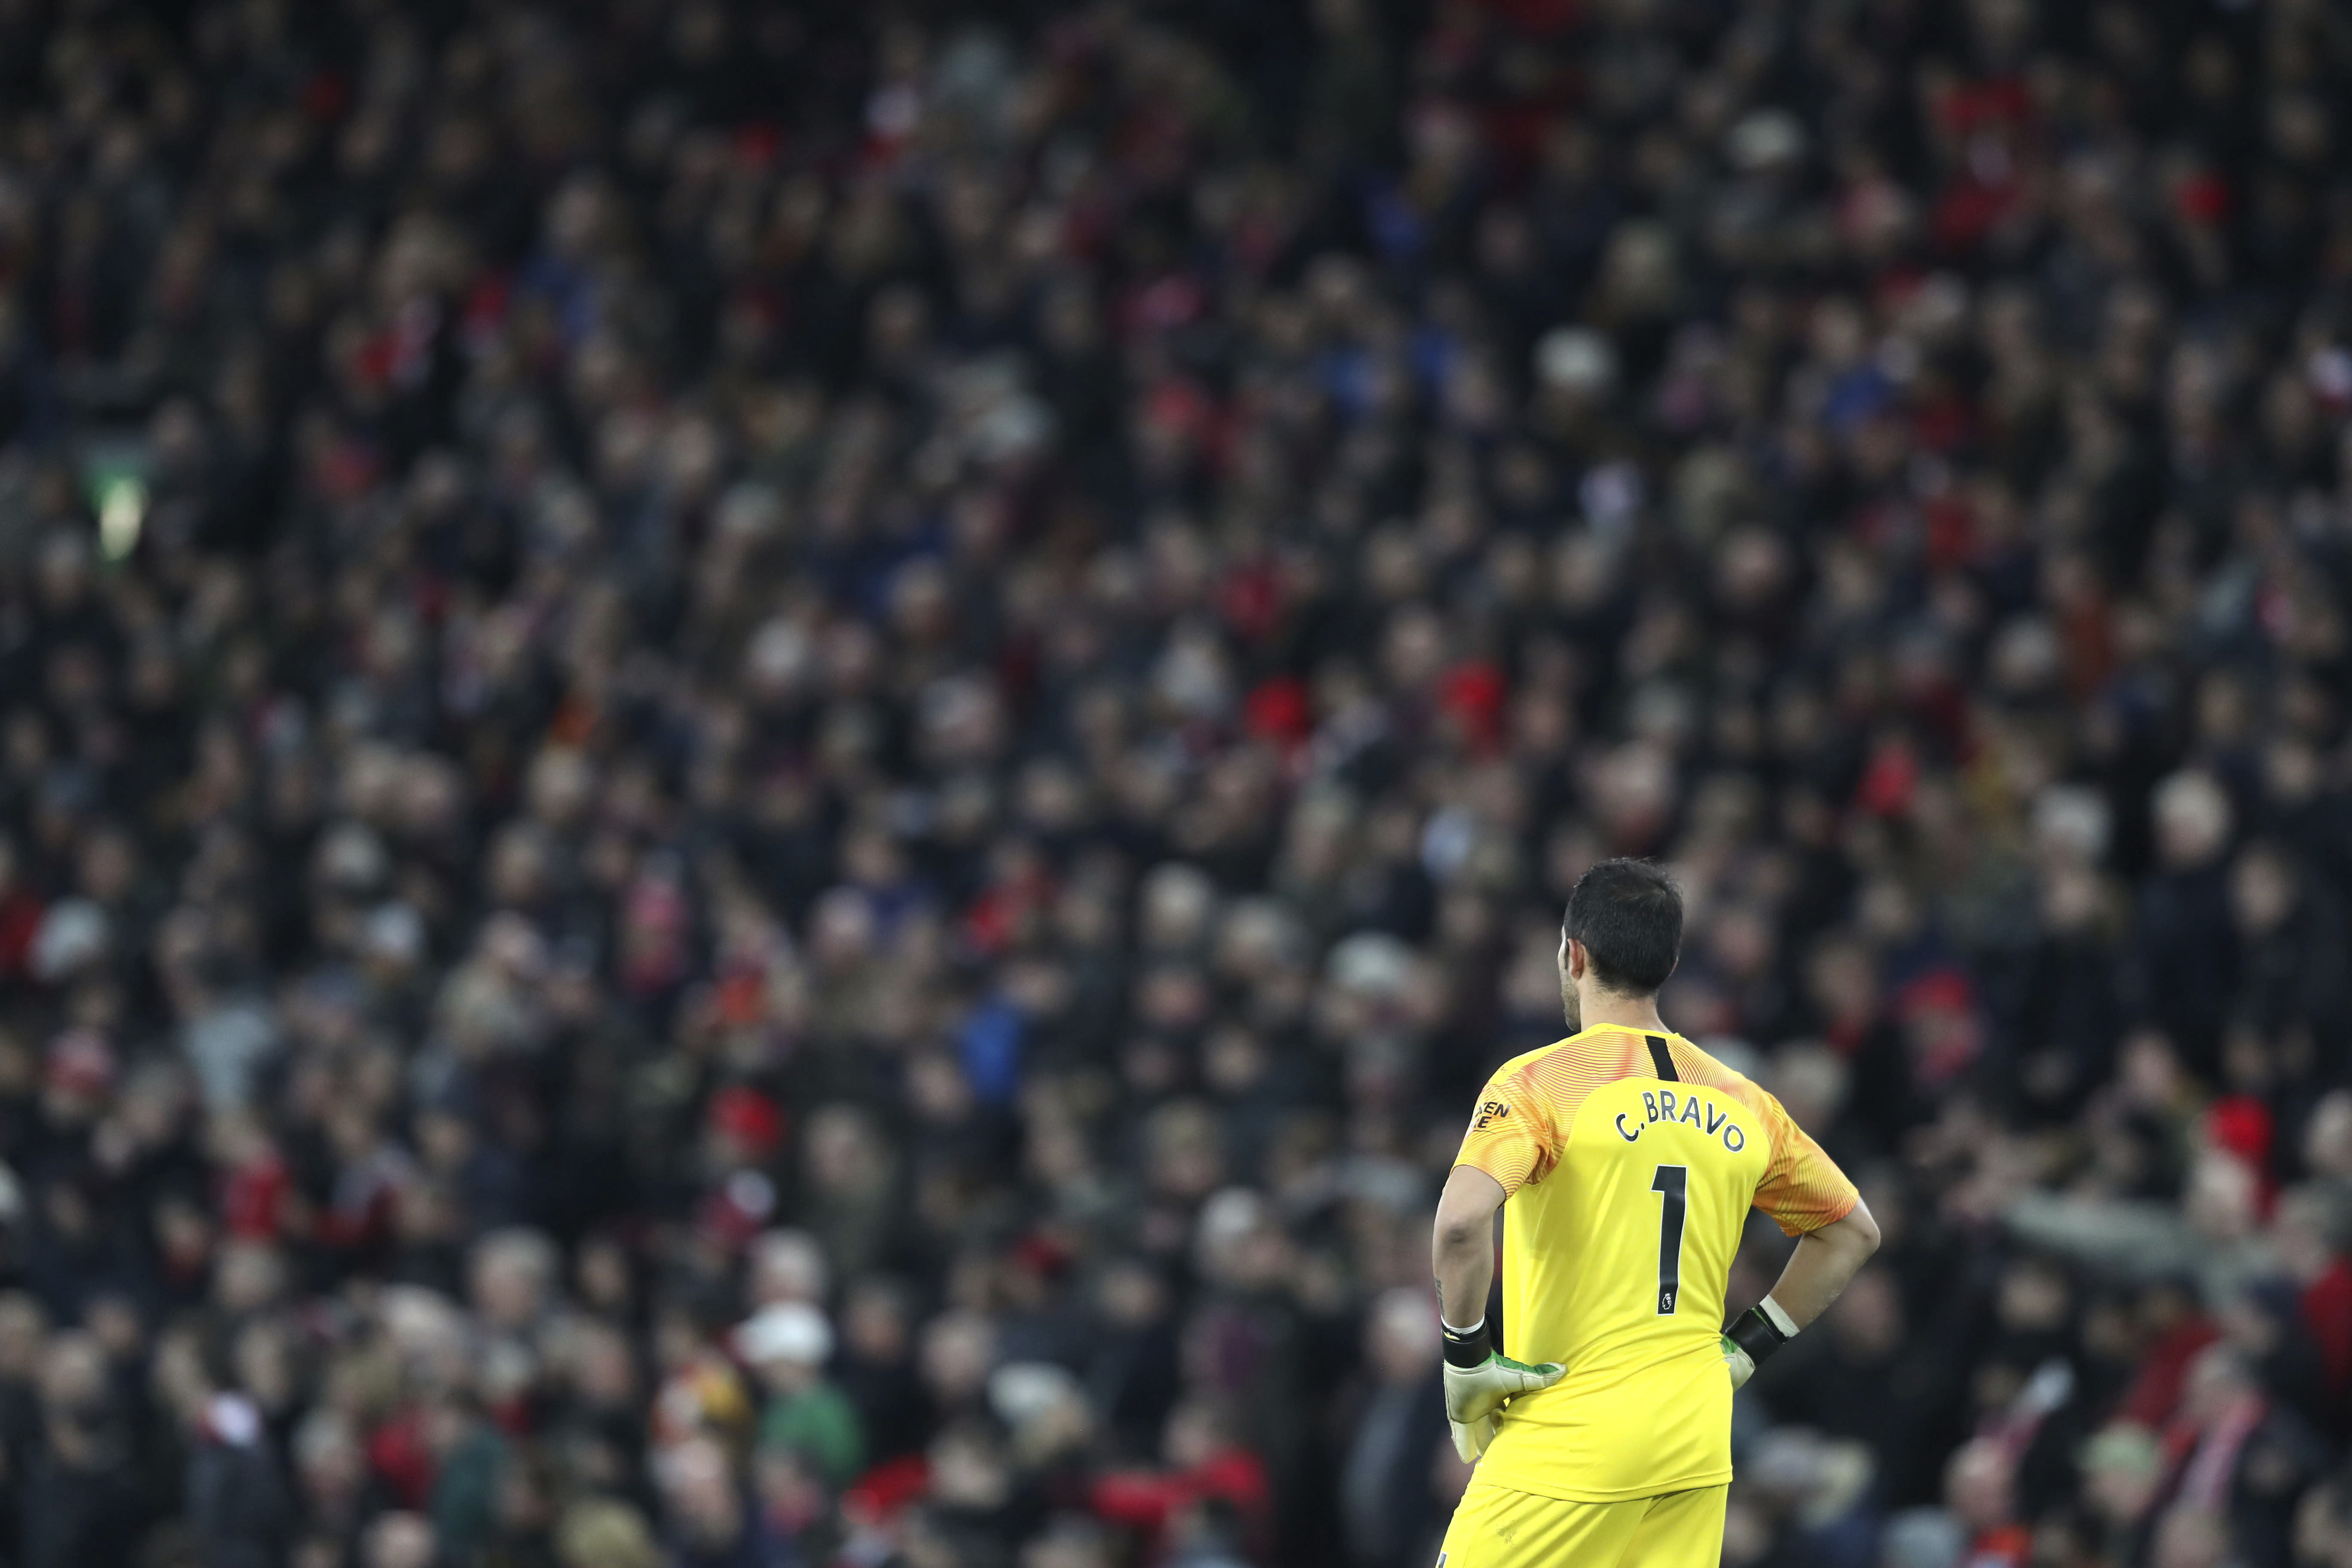 Manchester City's goalkeeper Claudio Bravo stands during the English Premier League soccer match between Liverpool and Manchester City at Anfield stadium in Liverpool, England, Sunday, Nov. 10, 2019. (AP Photo/Jon Super)